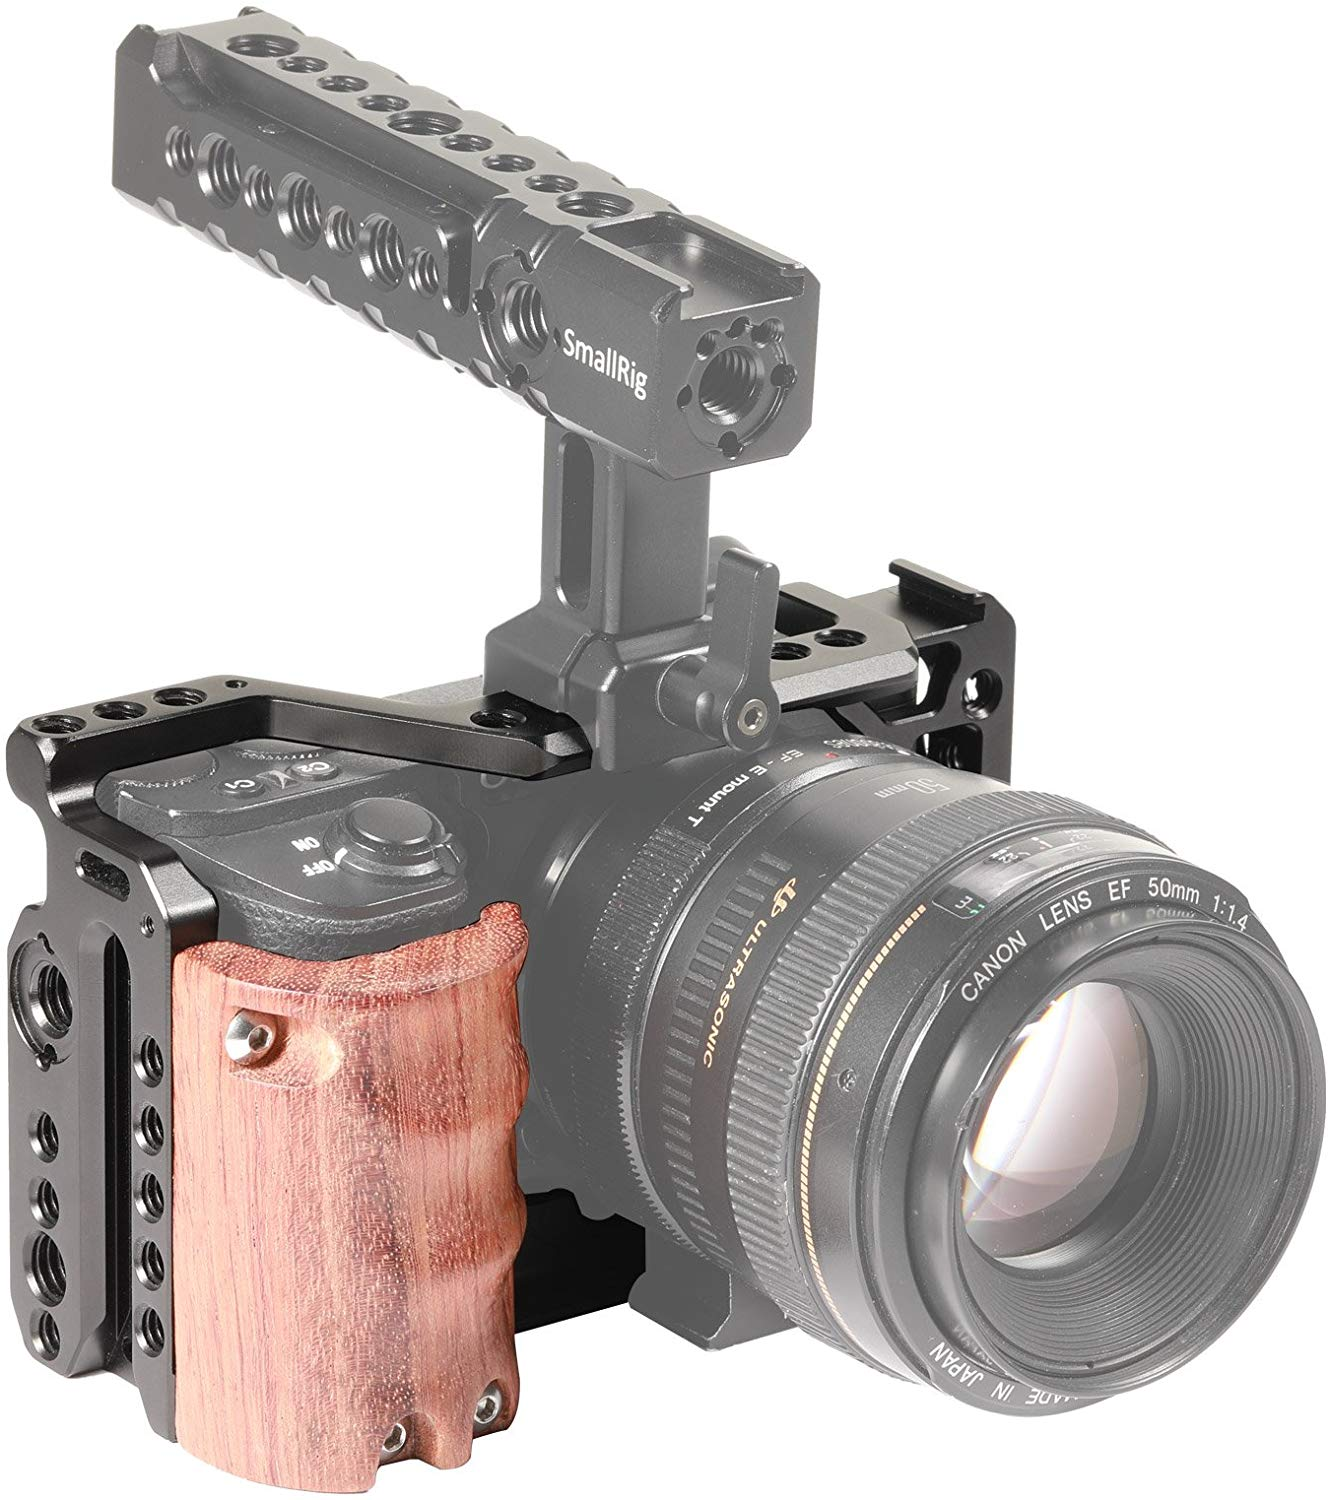 SMALLRIG Camera A6500 Cage Kit with Wooden Handle Hand Grip for Sony Alpha A6500/ILCE-6500 4K Digital Mirrorless Camera - 2097